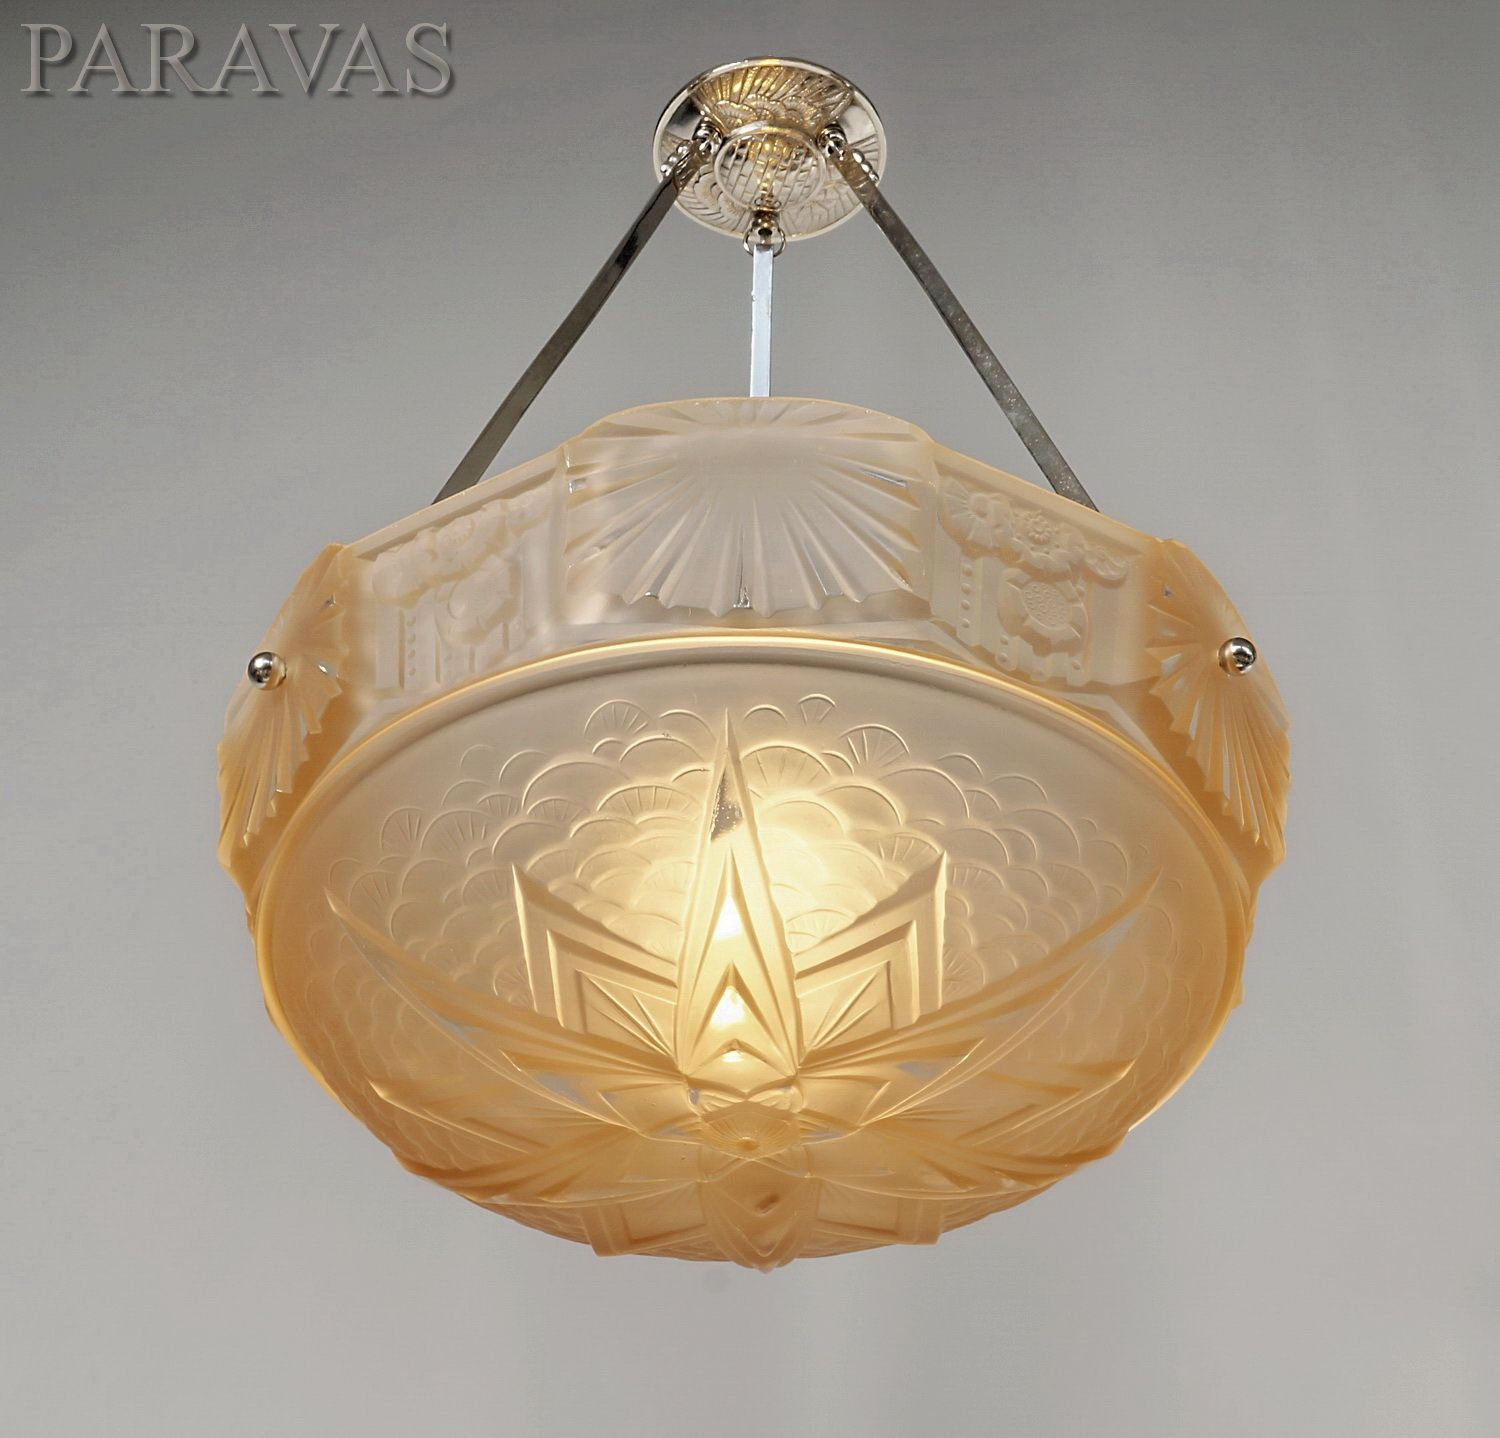 muller freres peach colored 1930 french art deco chandelier